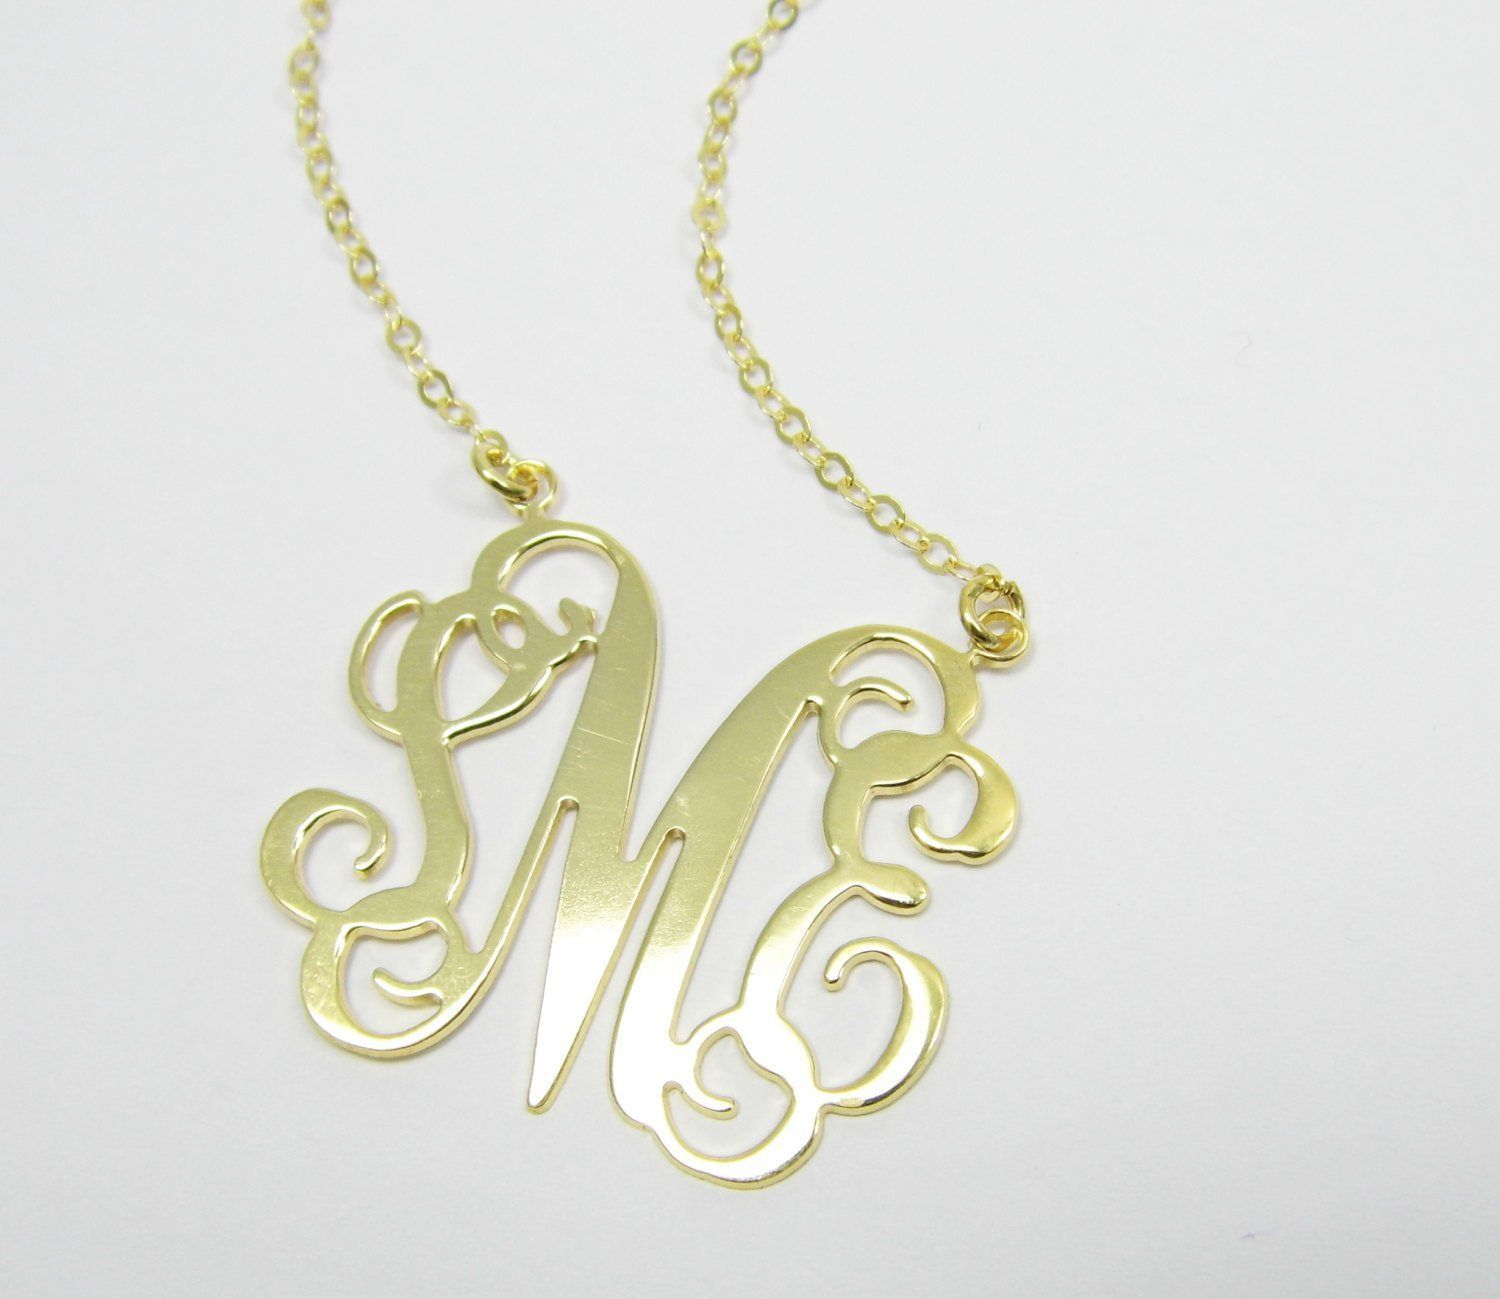 """Monogram necklace 0.8"""" Personalized Necklace - Sterling silver 925 Plated 18k gold. gift for her, monogram jewelry"""